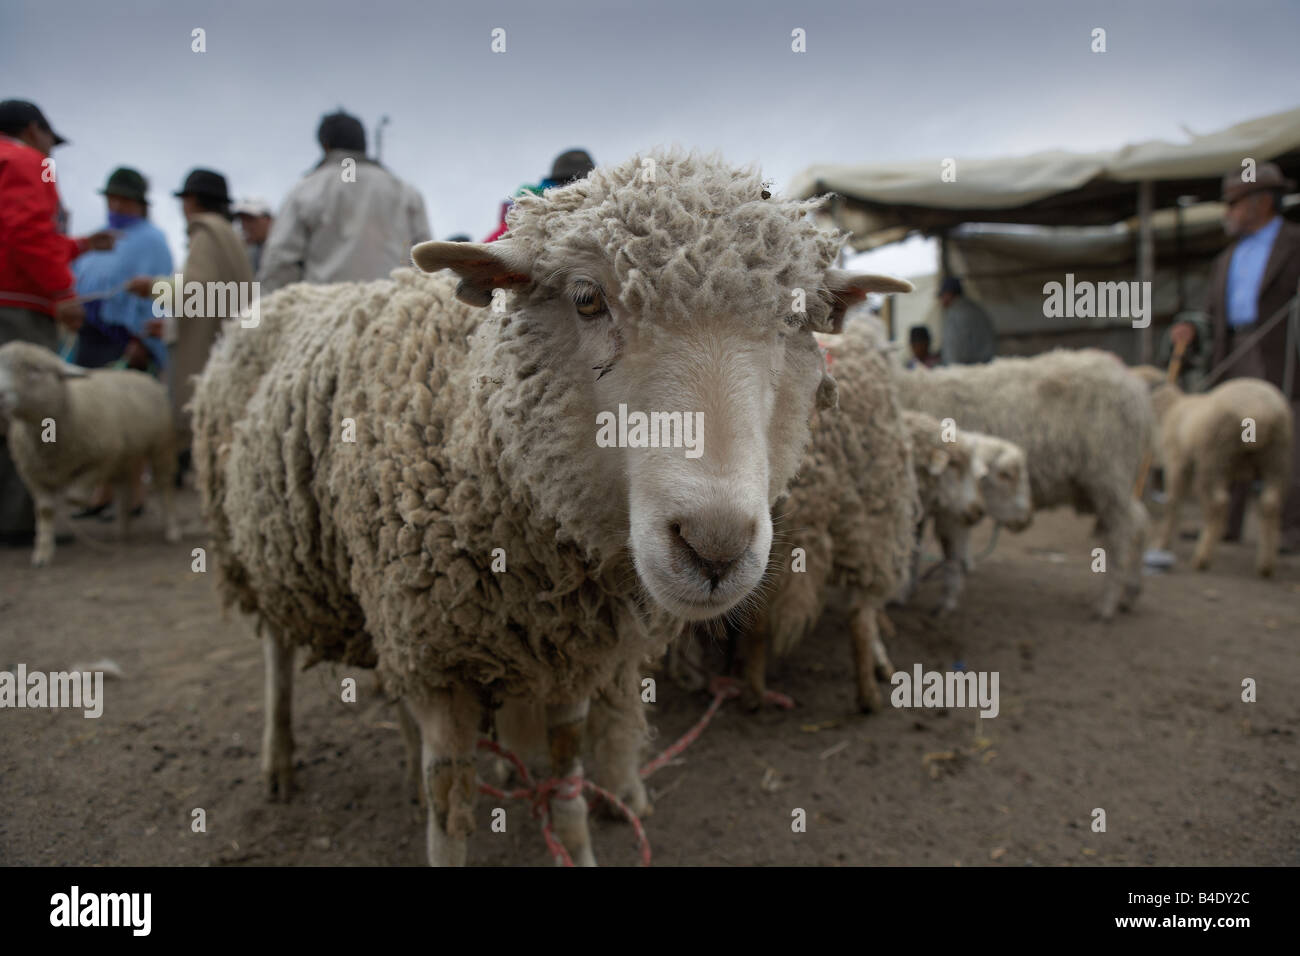 Sheep at Saquisili Market, Ecuador - Stock Image